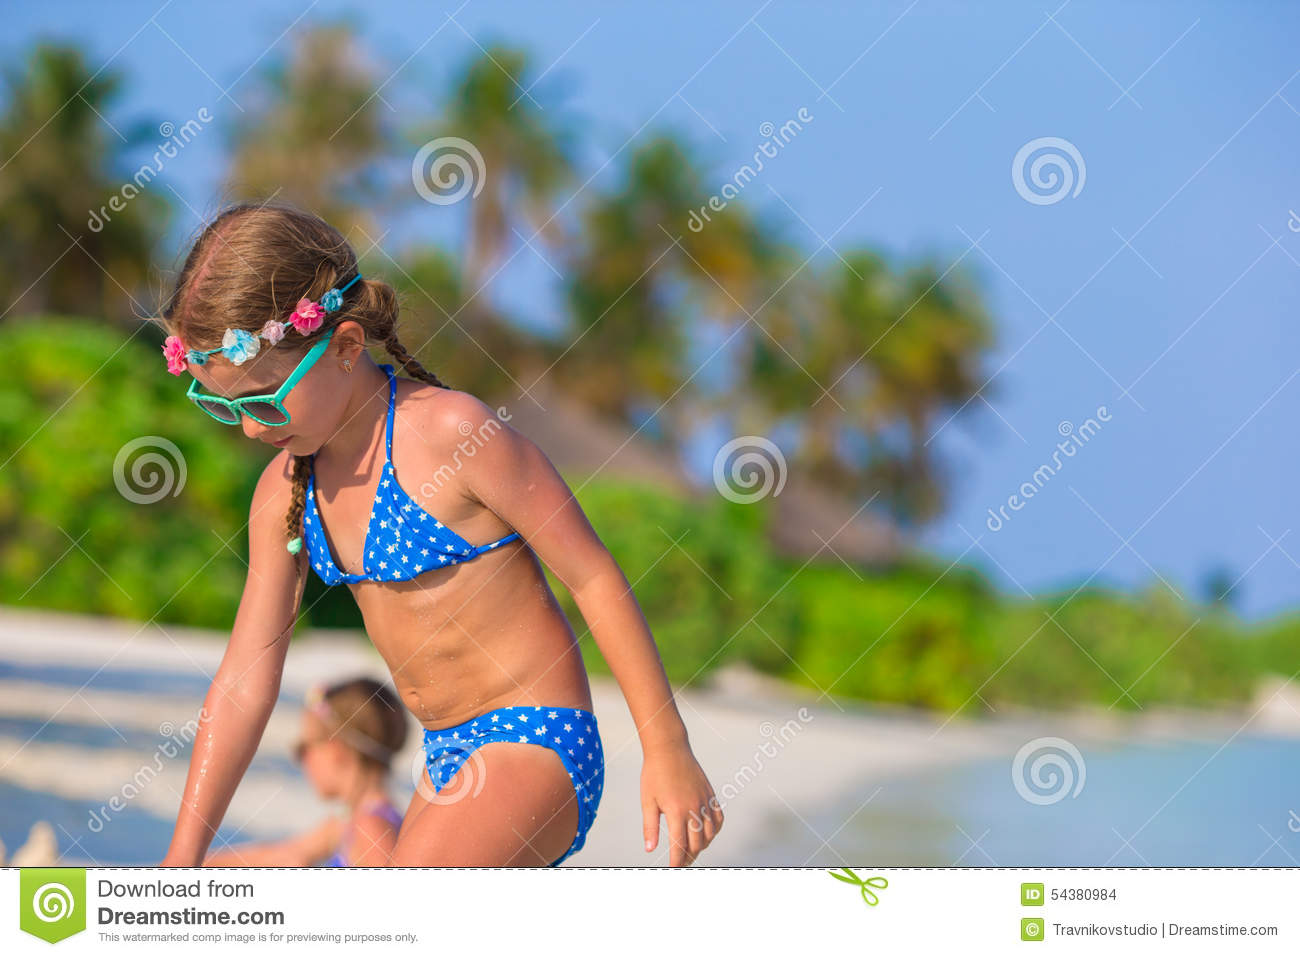 Adorable Little Girls Playing With Beach Toys Stock Photo -8002